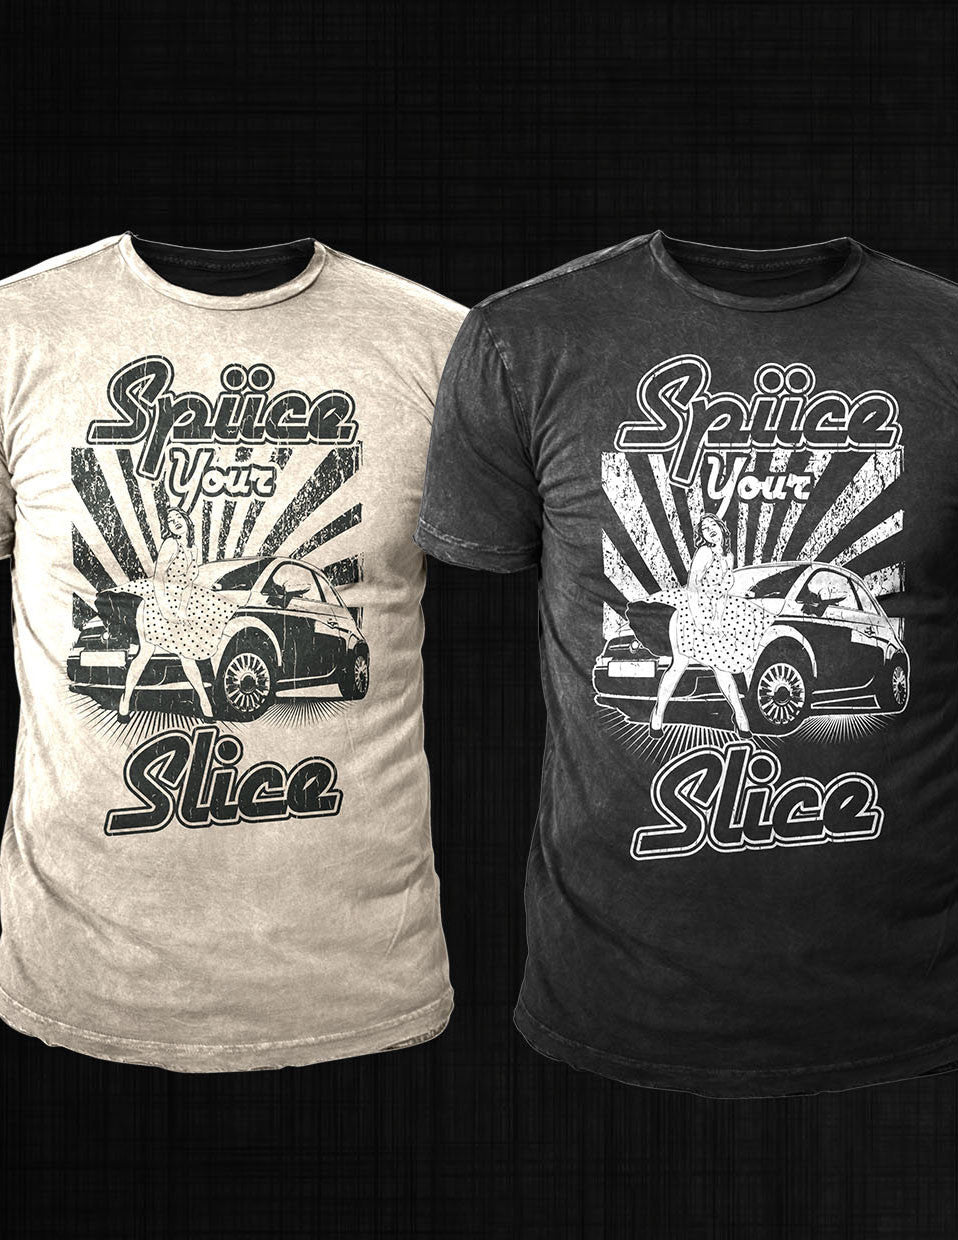 New Spiice Tees Are In